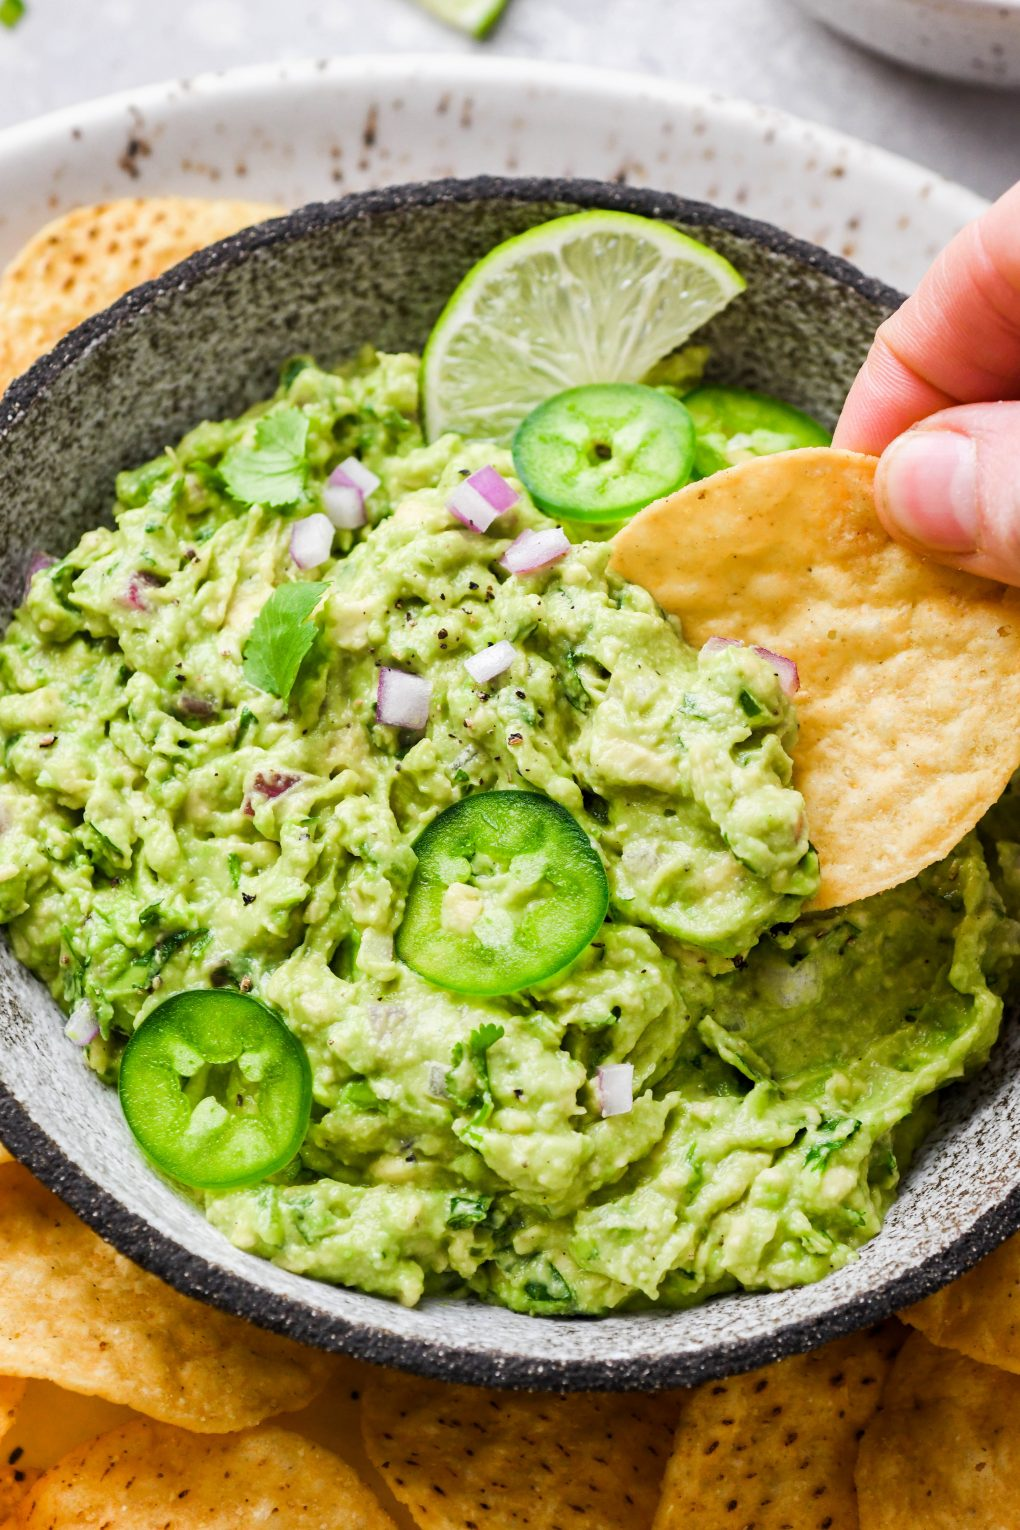 Close up shot of a hand dipping a round tortilla chip into a small bowl of bright green guacamole. Guacamole is topped with some finely diced onion, thinly sliced jalapeño, and cilantro leaves.